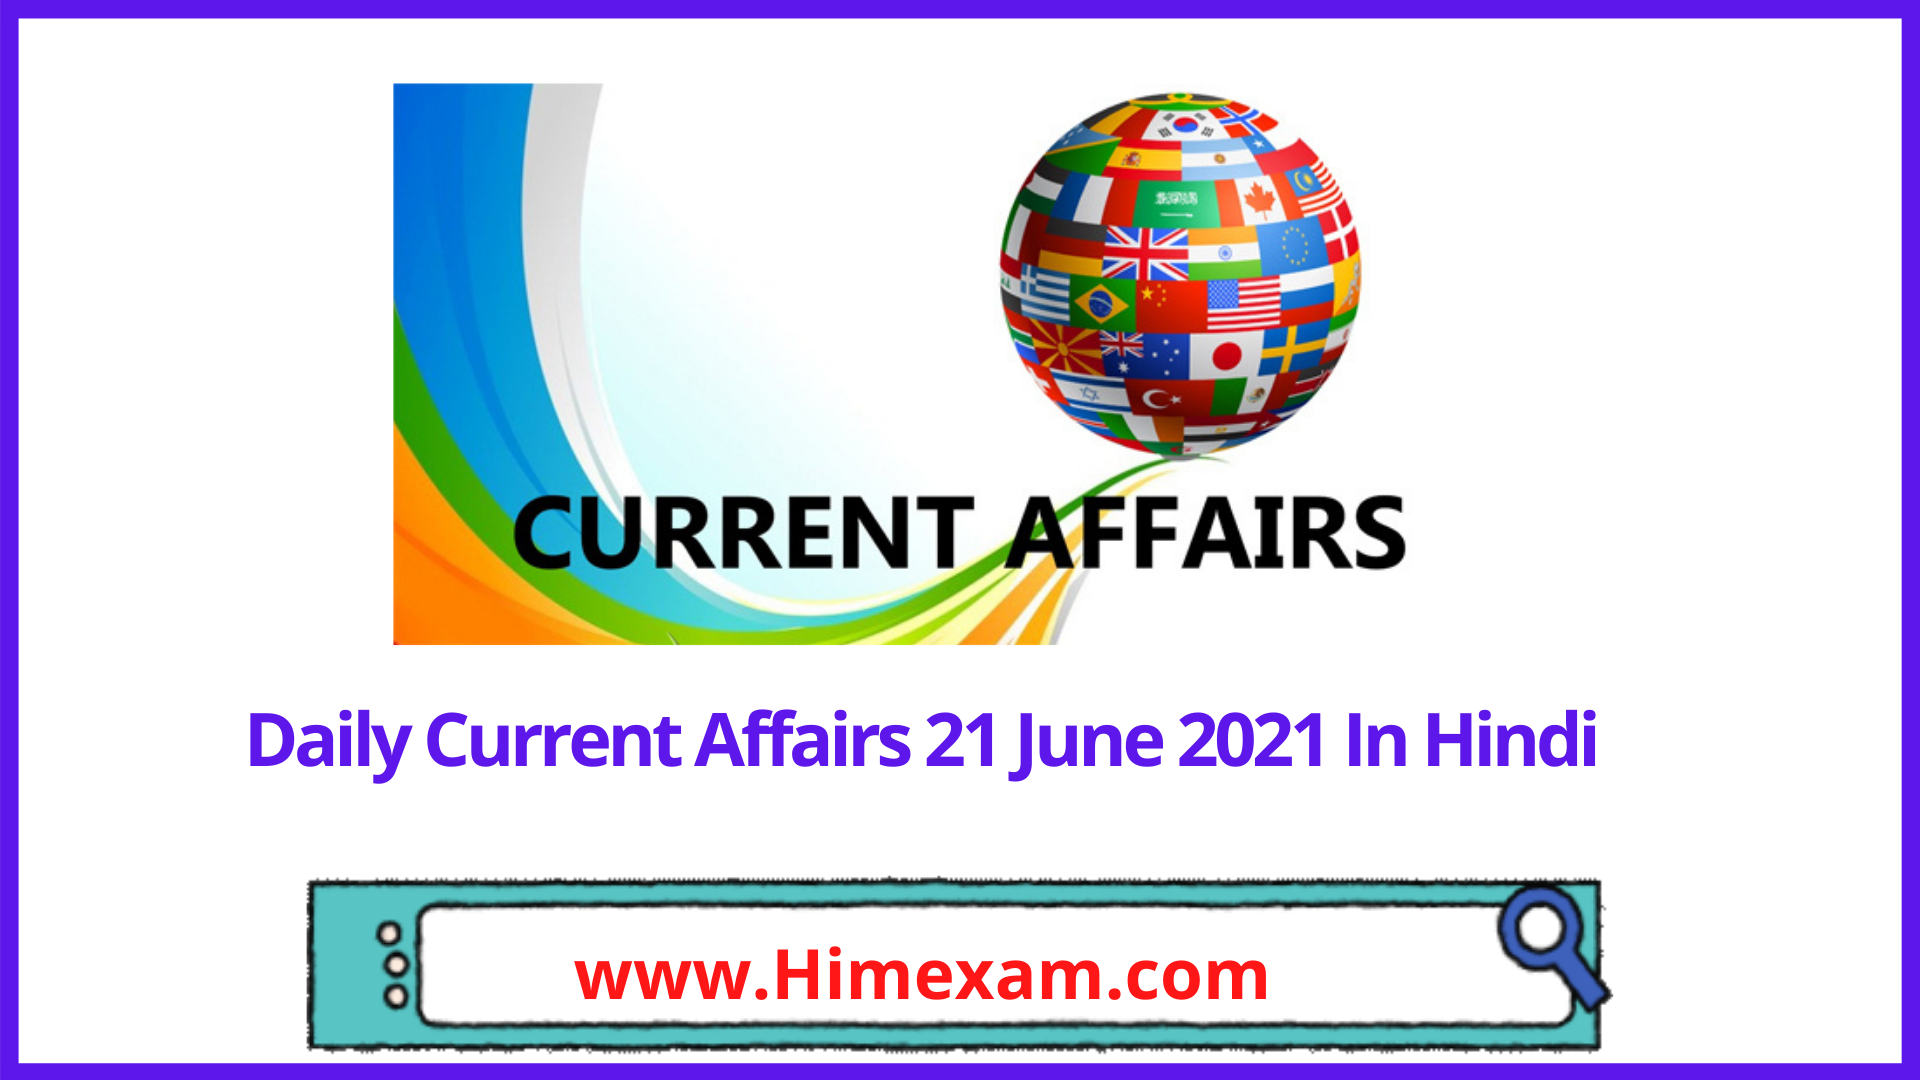 Daily Current Affairs 21 June 2021 In Hindi